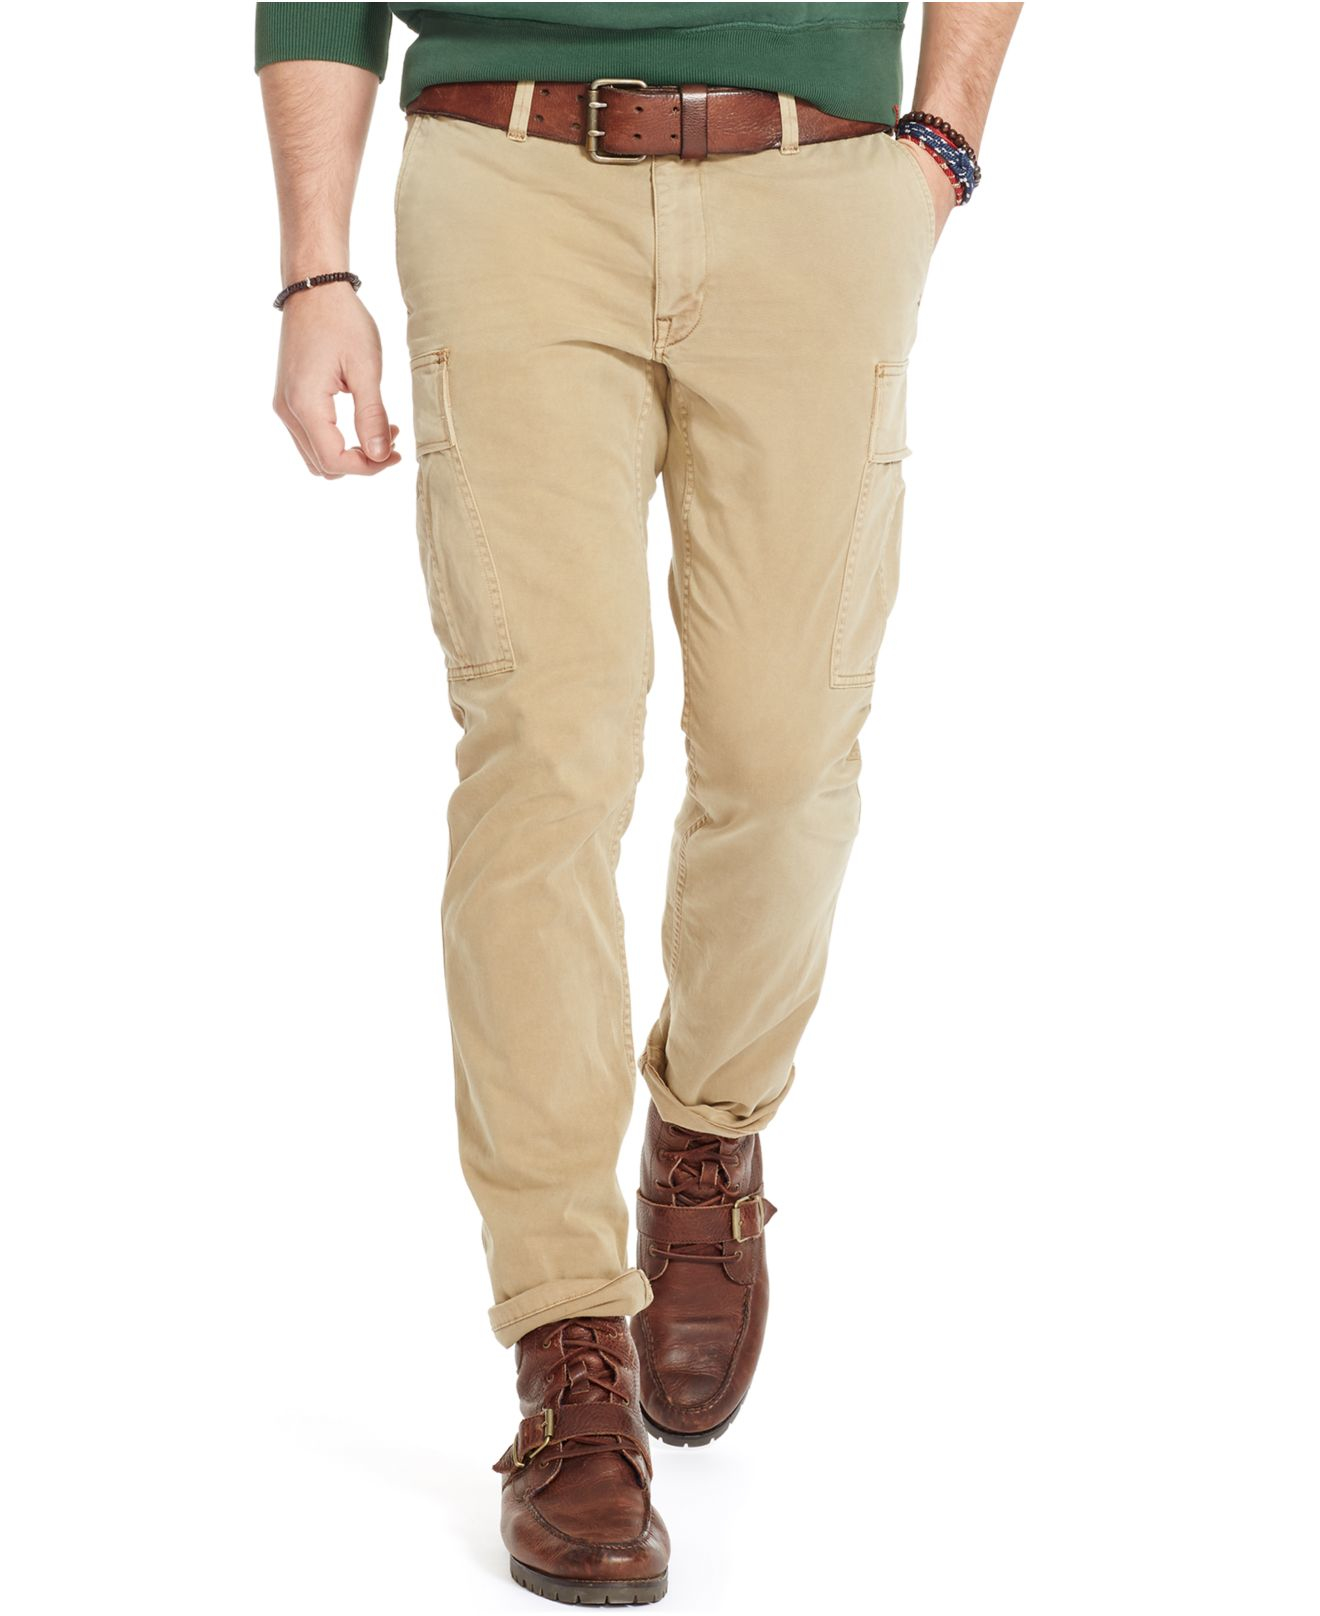 polo ralph lauren slim fit stretch cargo pants in brown for men lyst. Black Bedroom Furniture Sets. Home Design Ideas